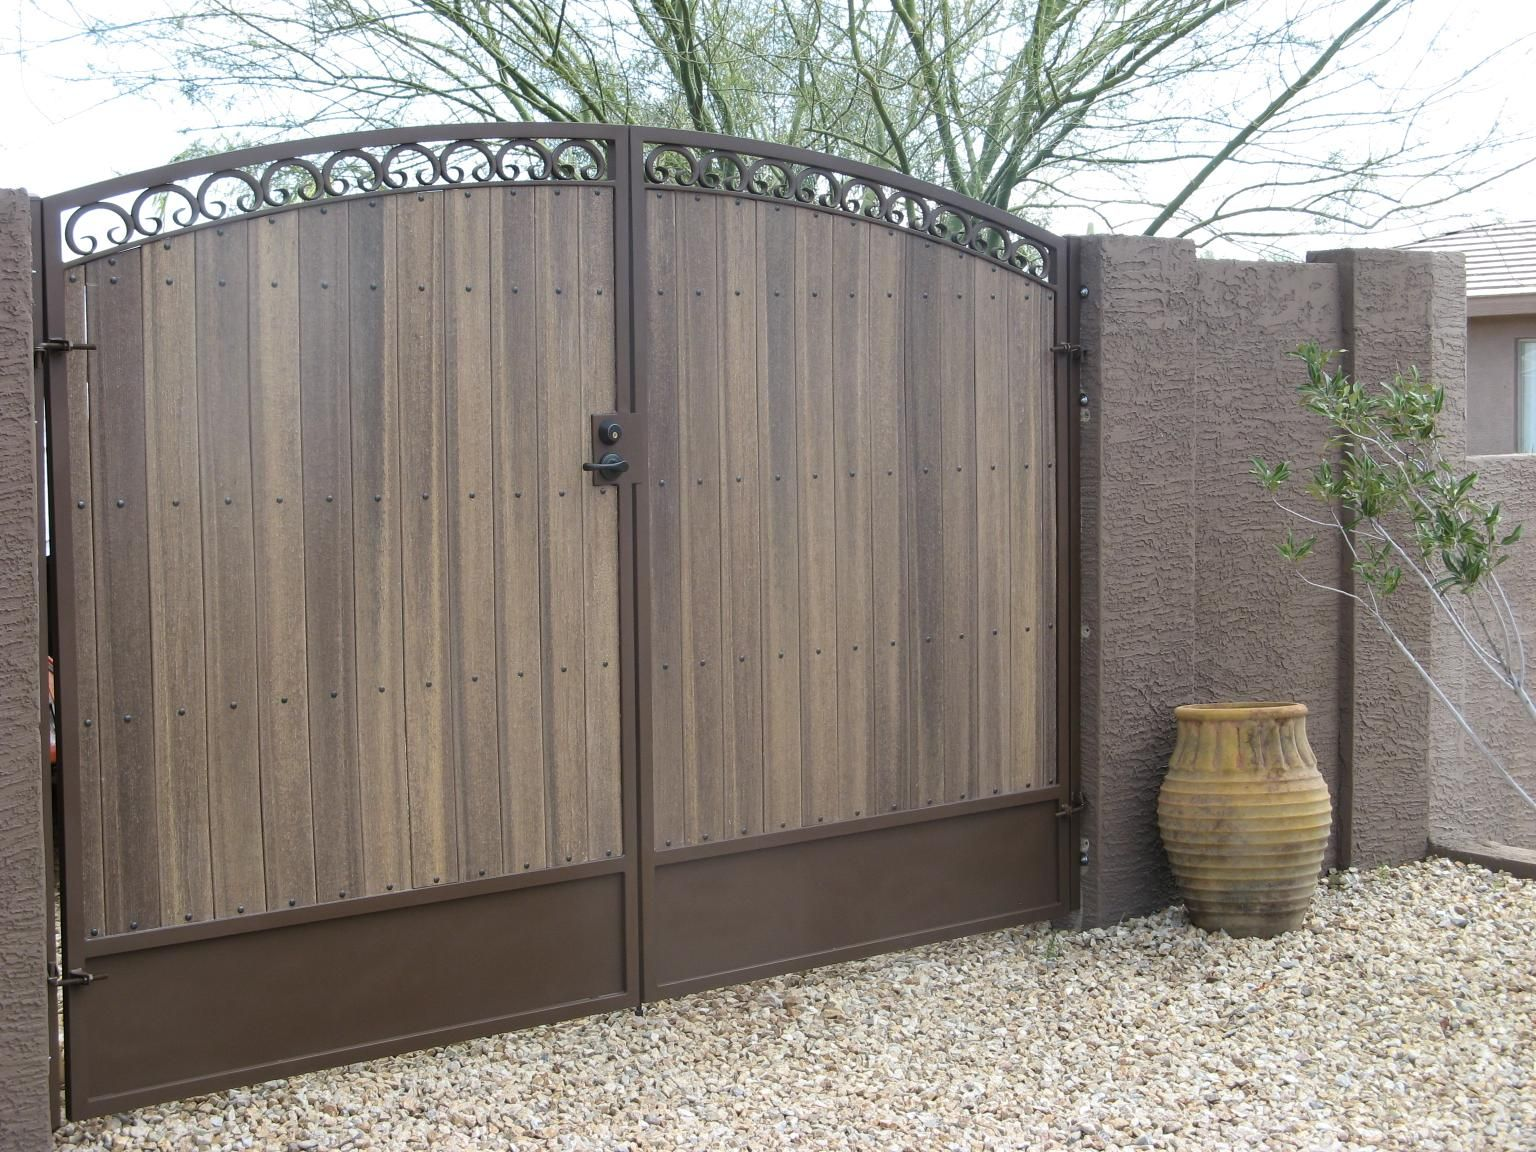 Deco Series Arched Gates Are The Highest Quality Series